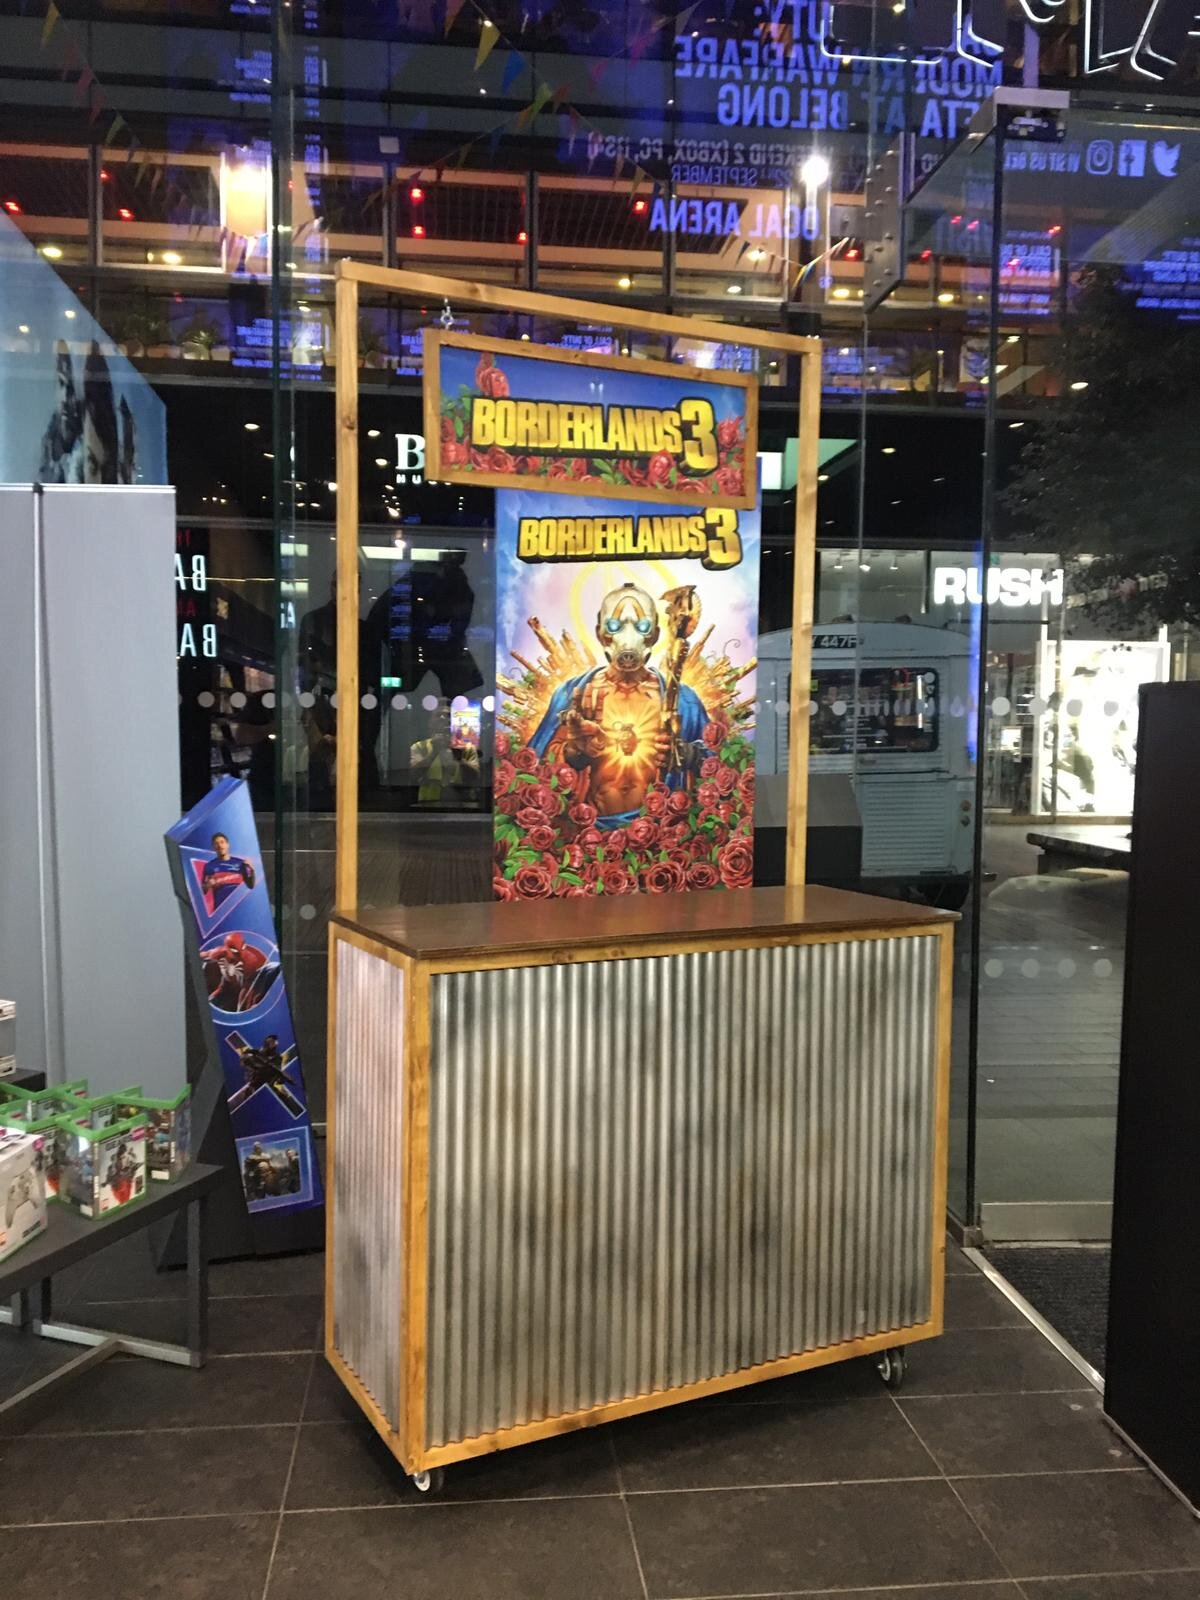 Borderlands 3 Promo - Corrugated Industrial Bar Hire.jpeg